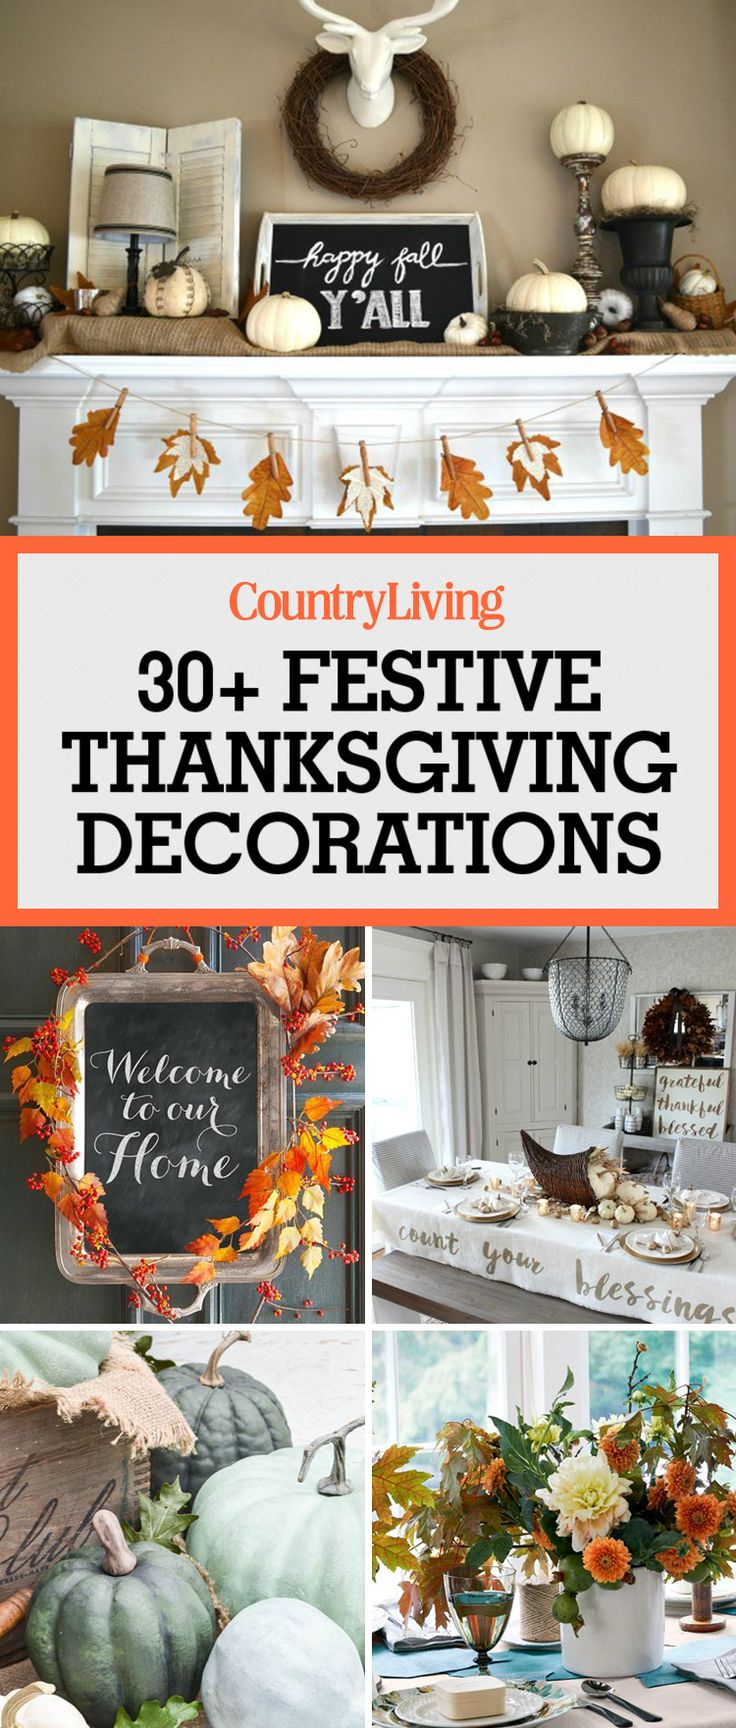 40 Thanksgiving Decorations That Will Make Your